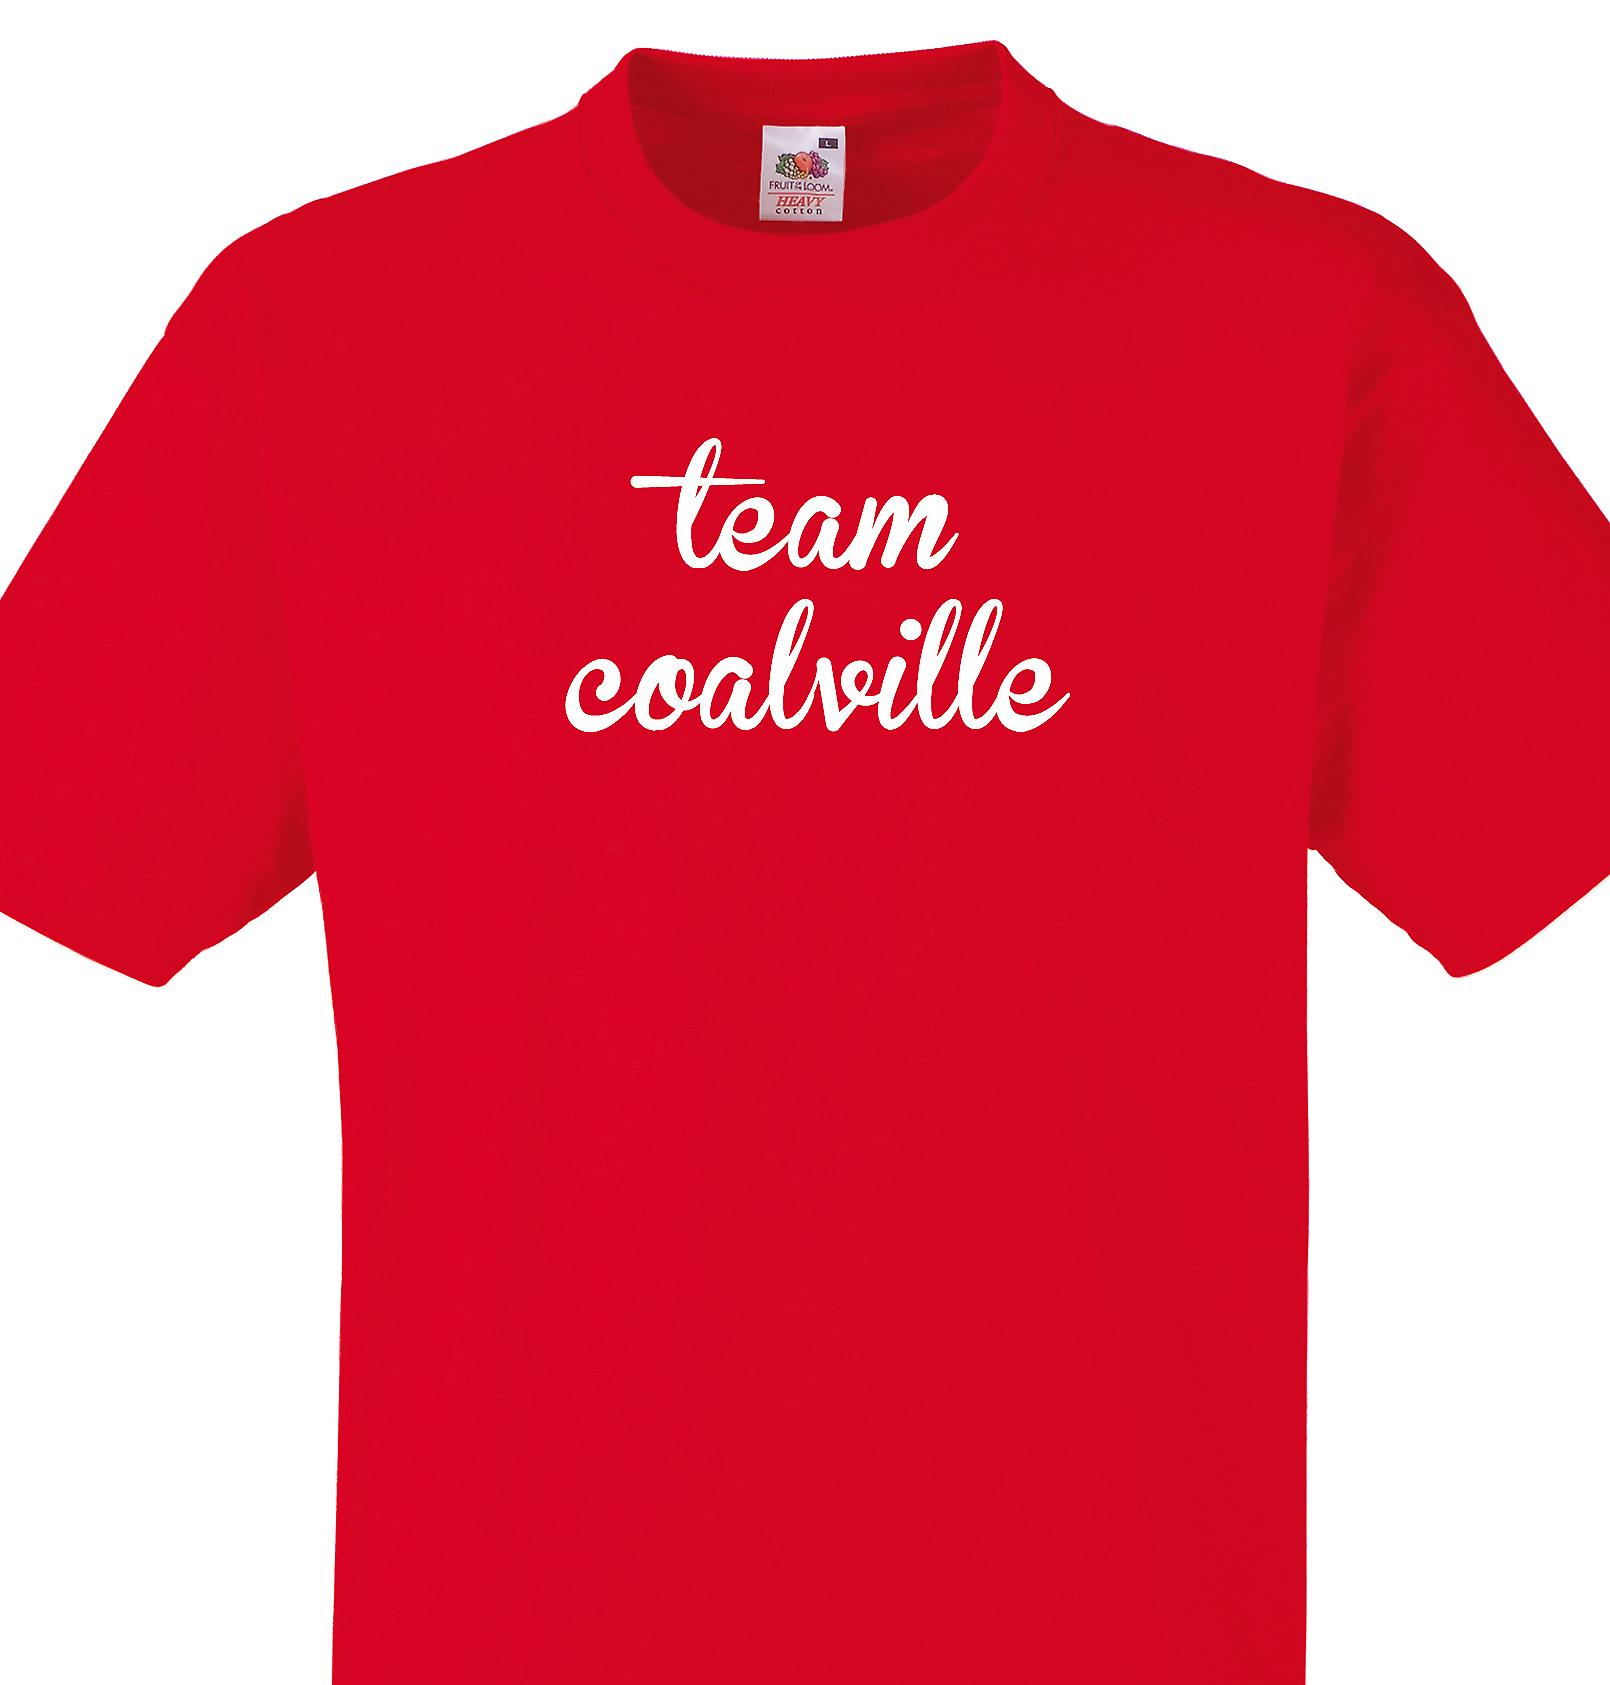 Team Coalville Red T shirt